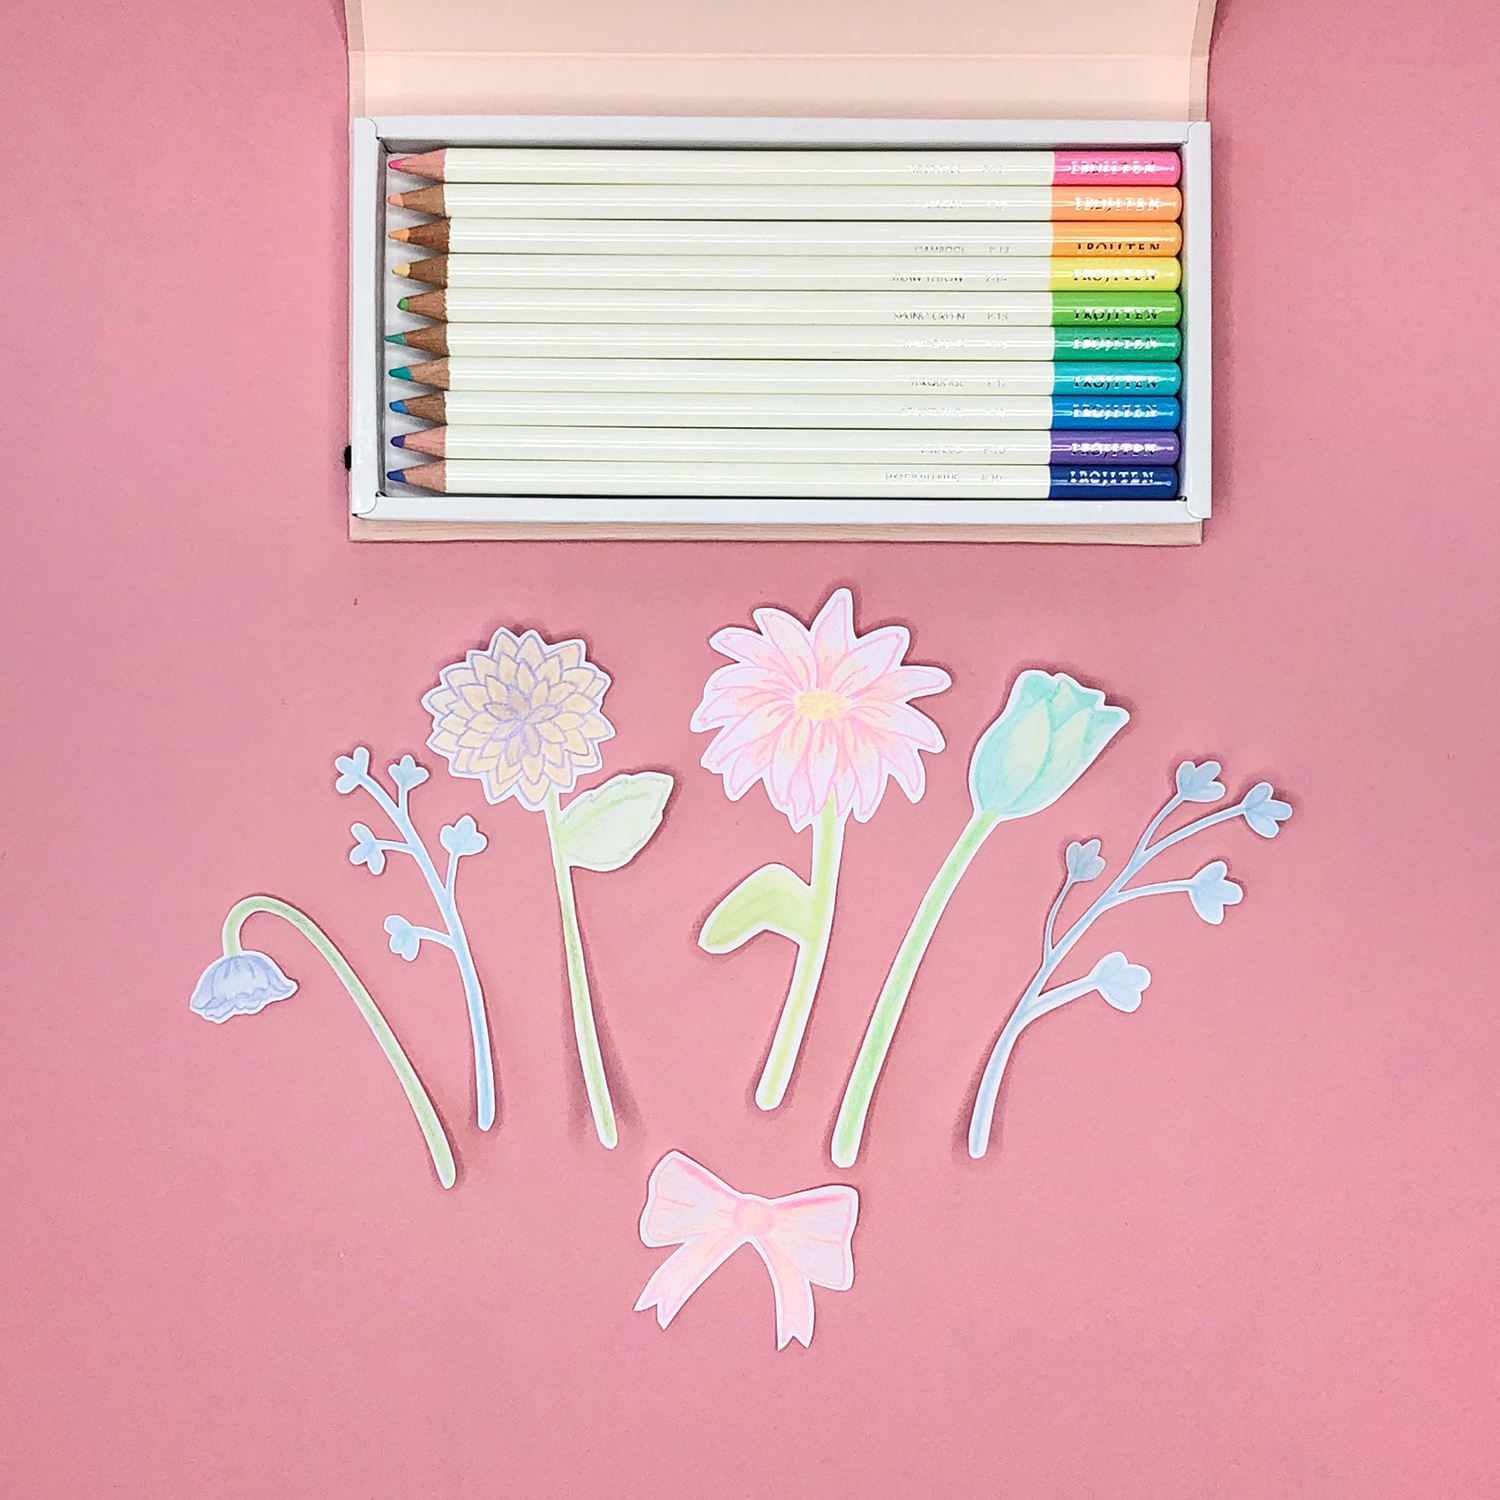 Make Your Own Cute Colored Pencil Cards for Spring, by Jessica Mack of BrownPaperBunny